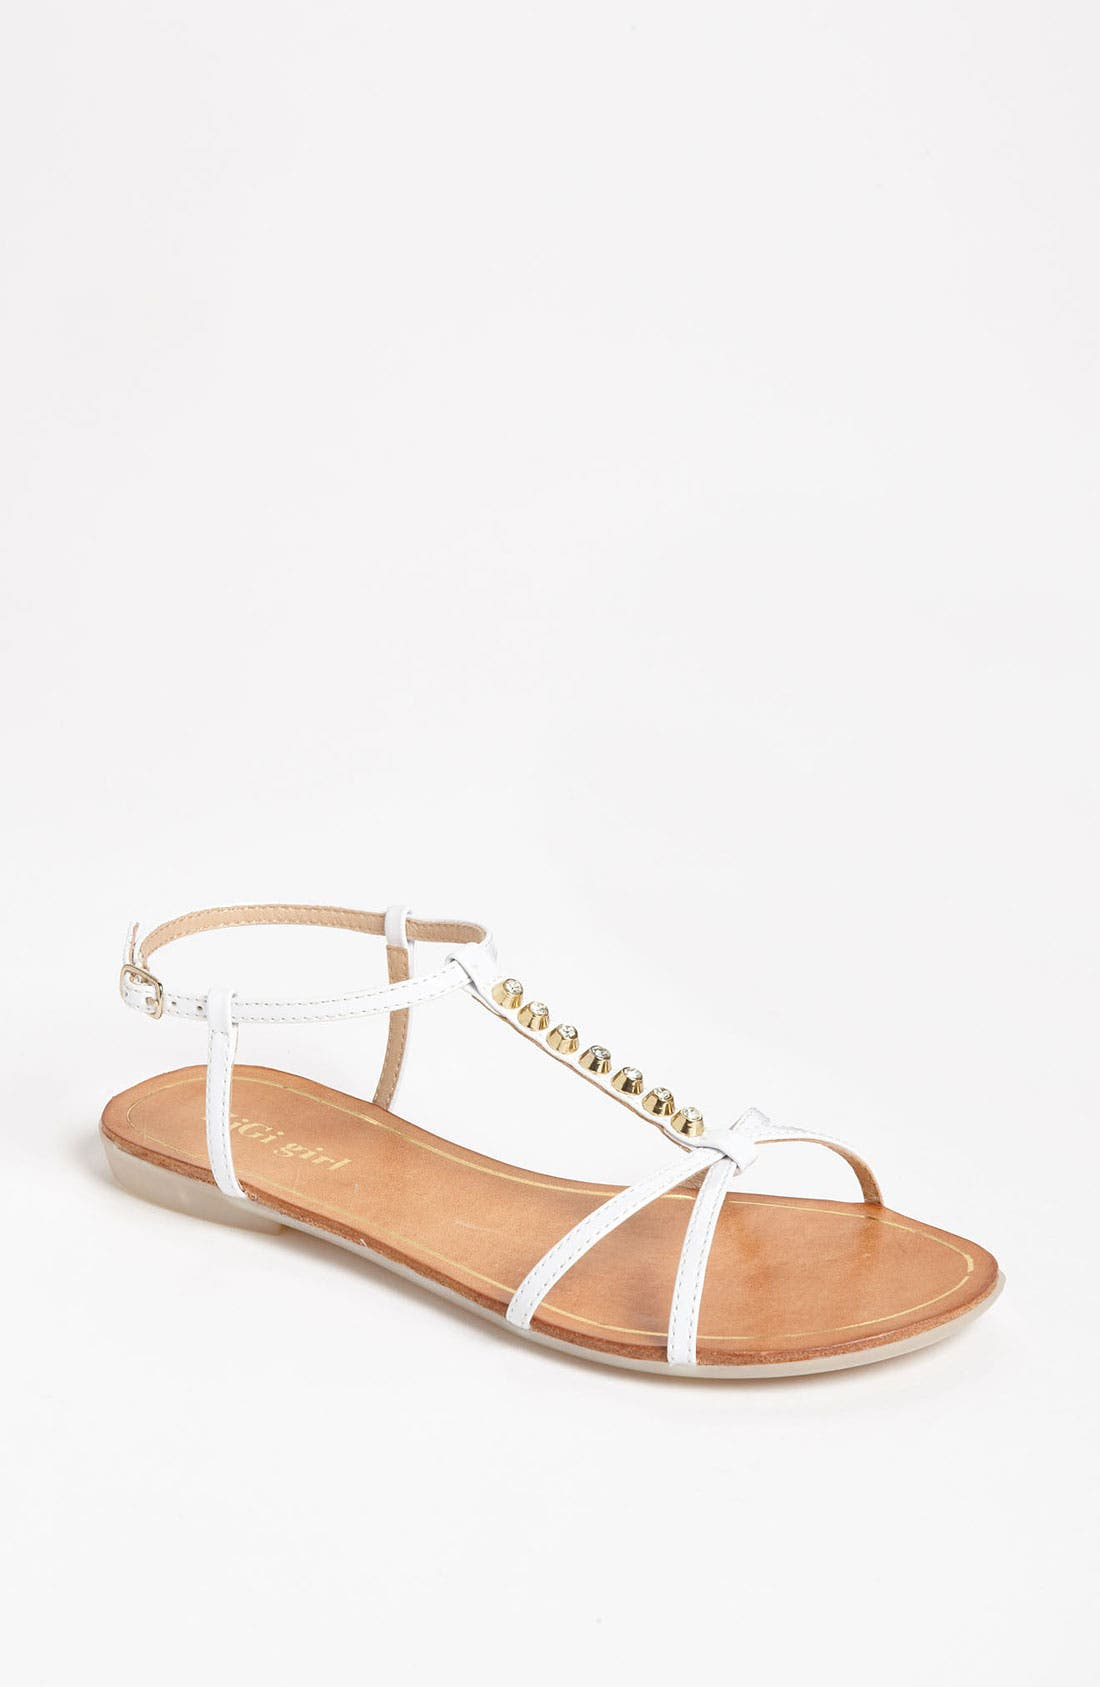 Alternate Image 1 Selected - ZiGi girl 'Adorable' Sandal